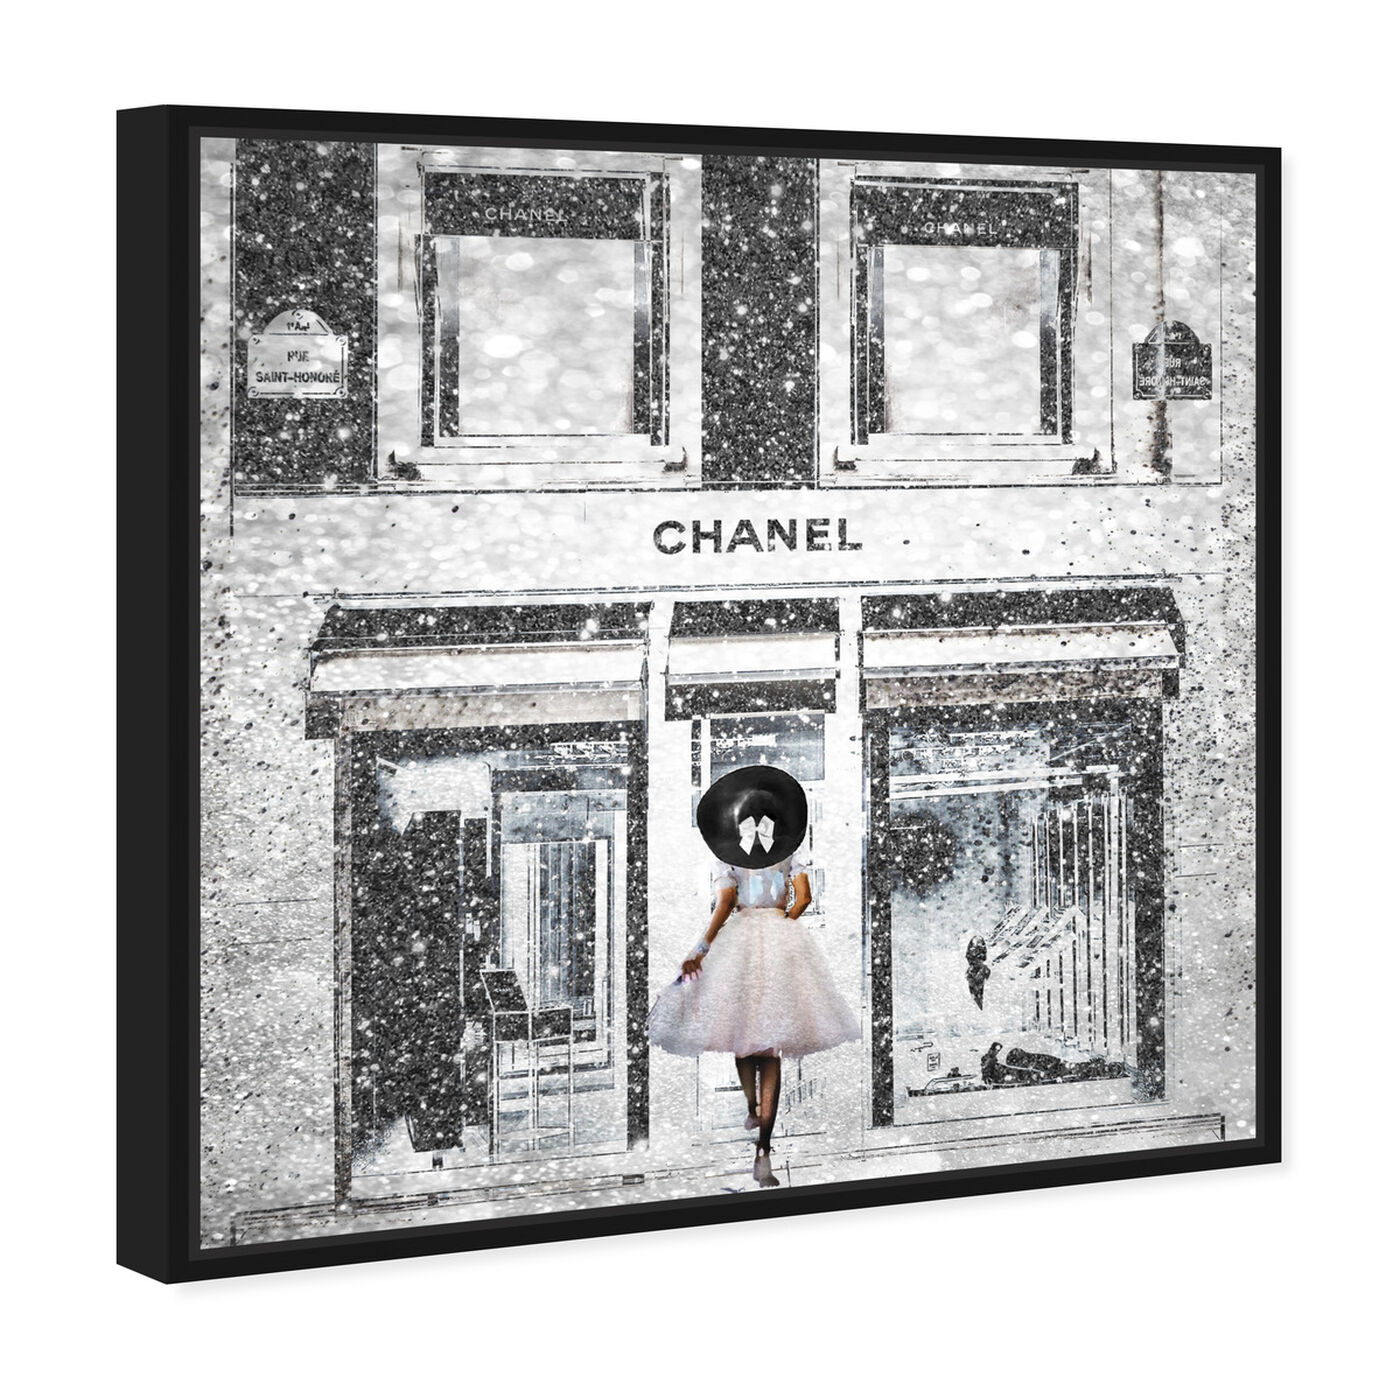 Angled view of Queen of the Store Caramel featuring fashion and glam and road signs art.